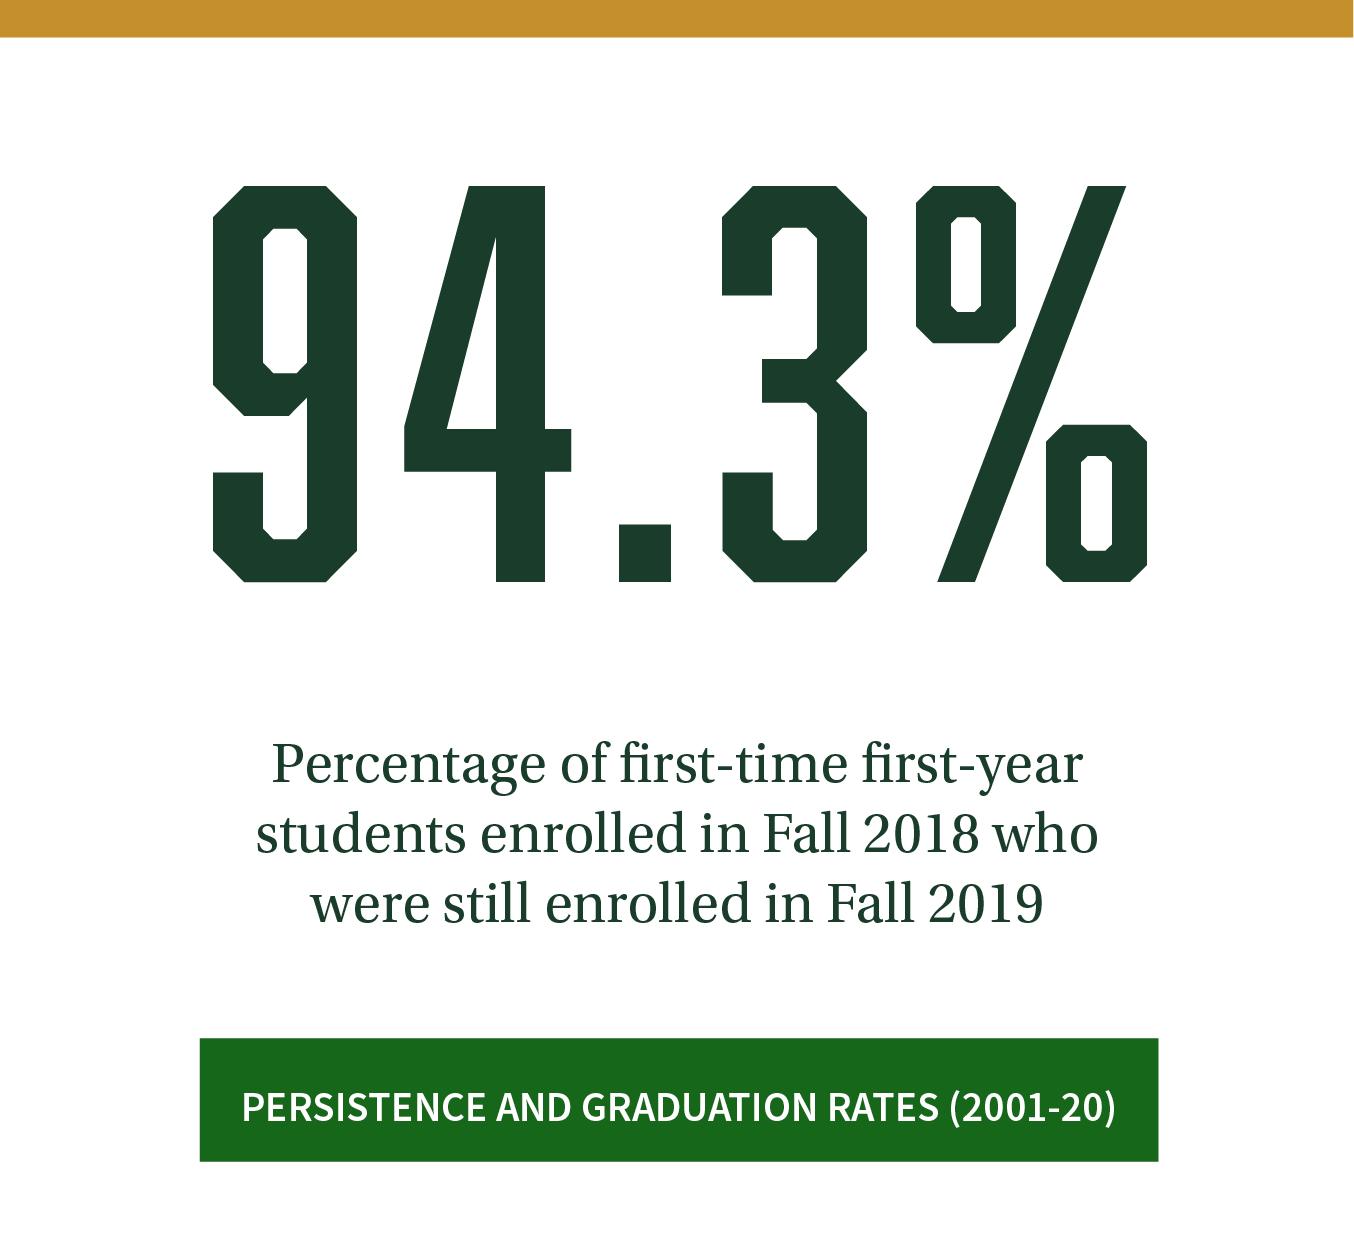 94.3%. Percentage of first-time first-year students who started in Fall 2018 and who were still enrolled Fall 2019. Click to see persistence and graduation rates (2001-20).